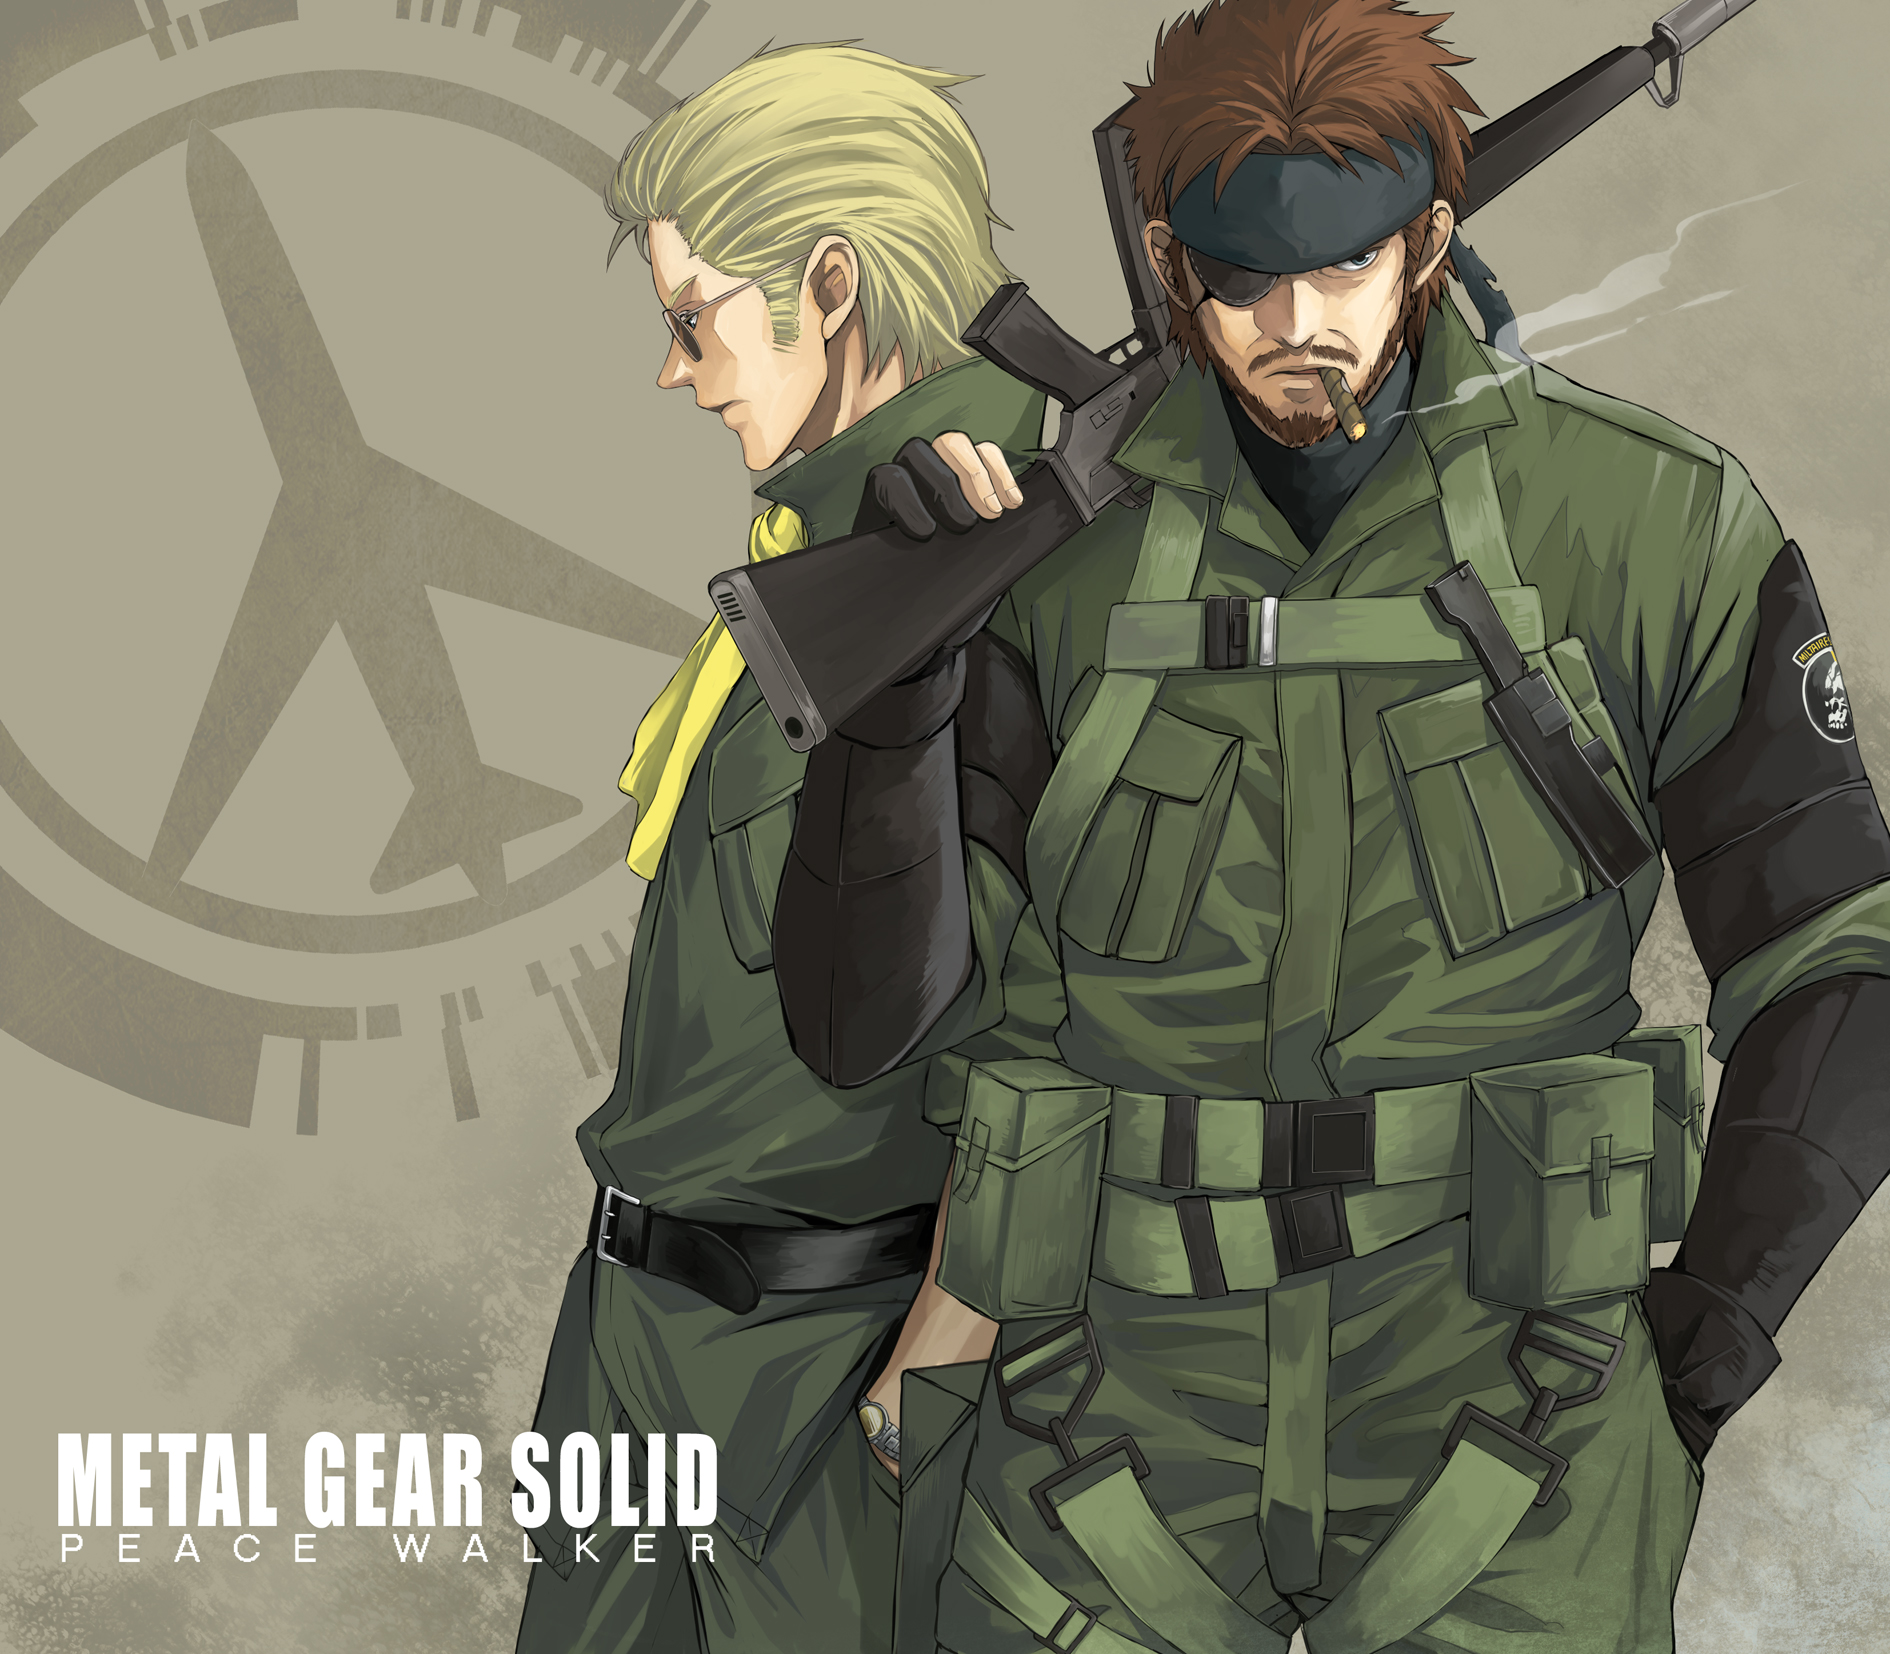 Kazuhira Miller Metal Gear Solid Zerochan Anime Image Board You may call me commander miller, master miller, or kaz purpose: kazuhira miller metal gear solid